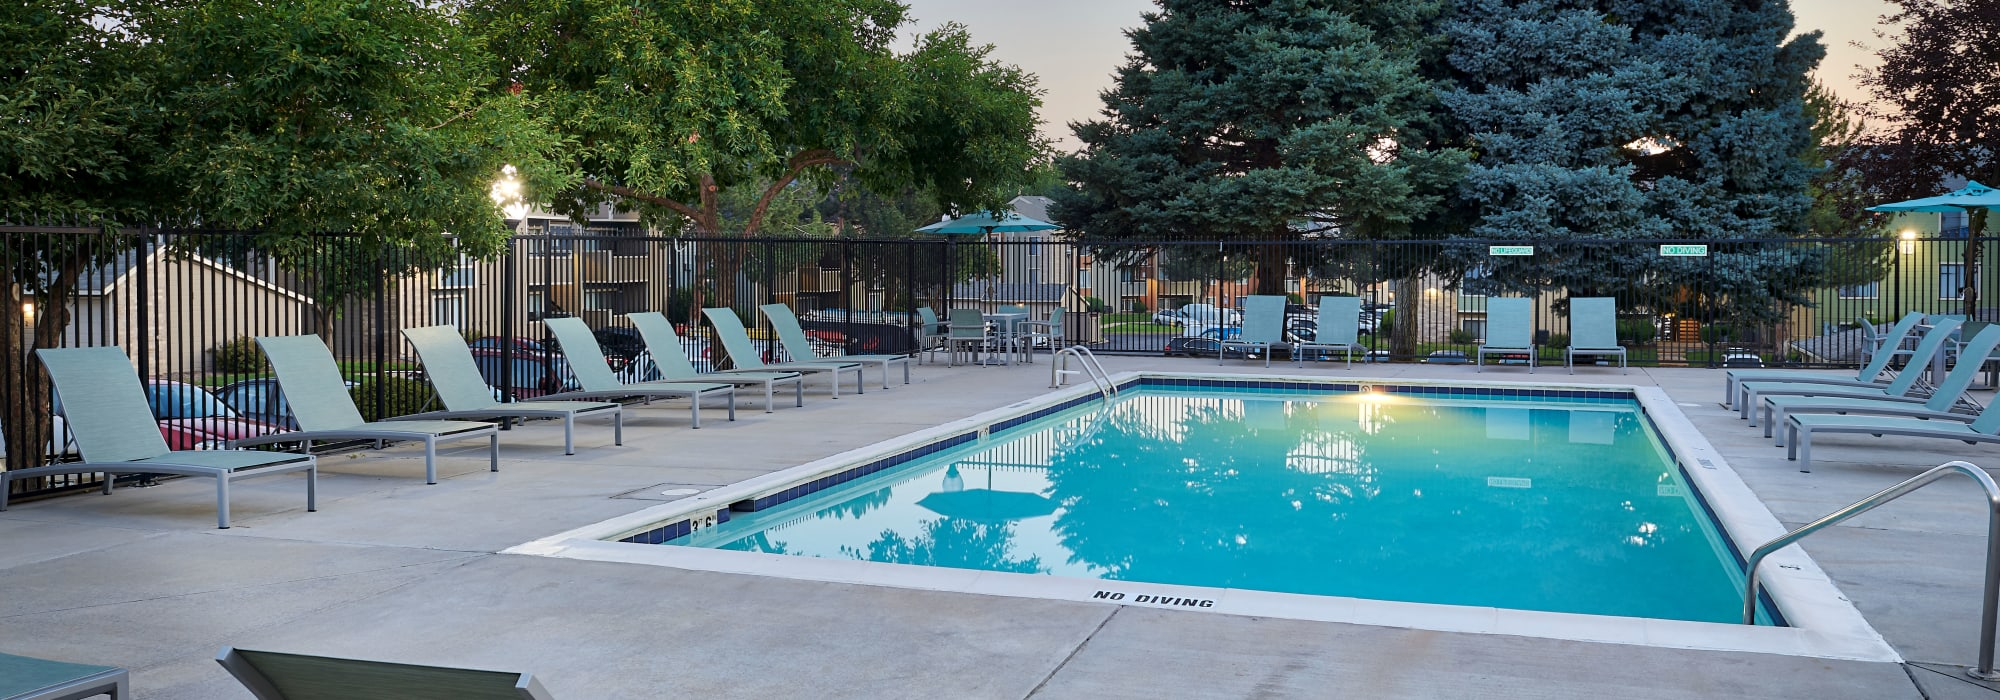 Accessibility statement at Alton Green Apartments in Denver, Colorado